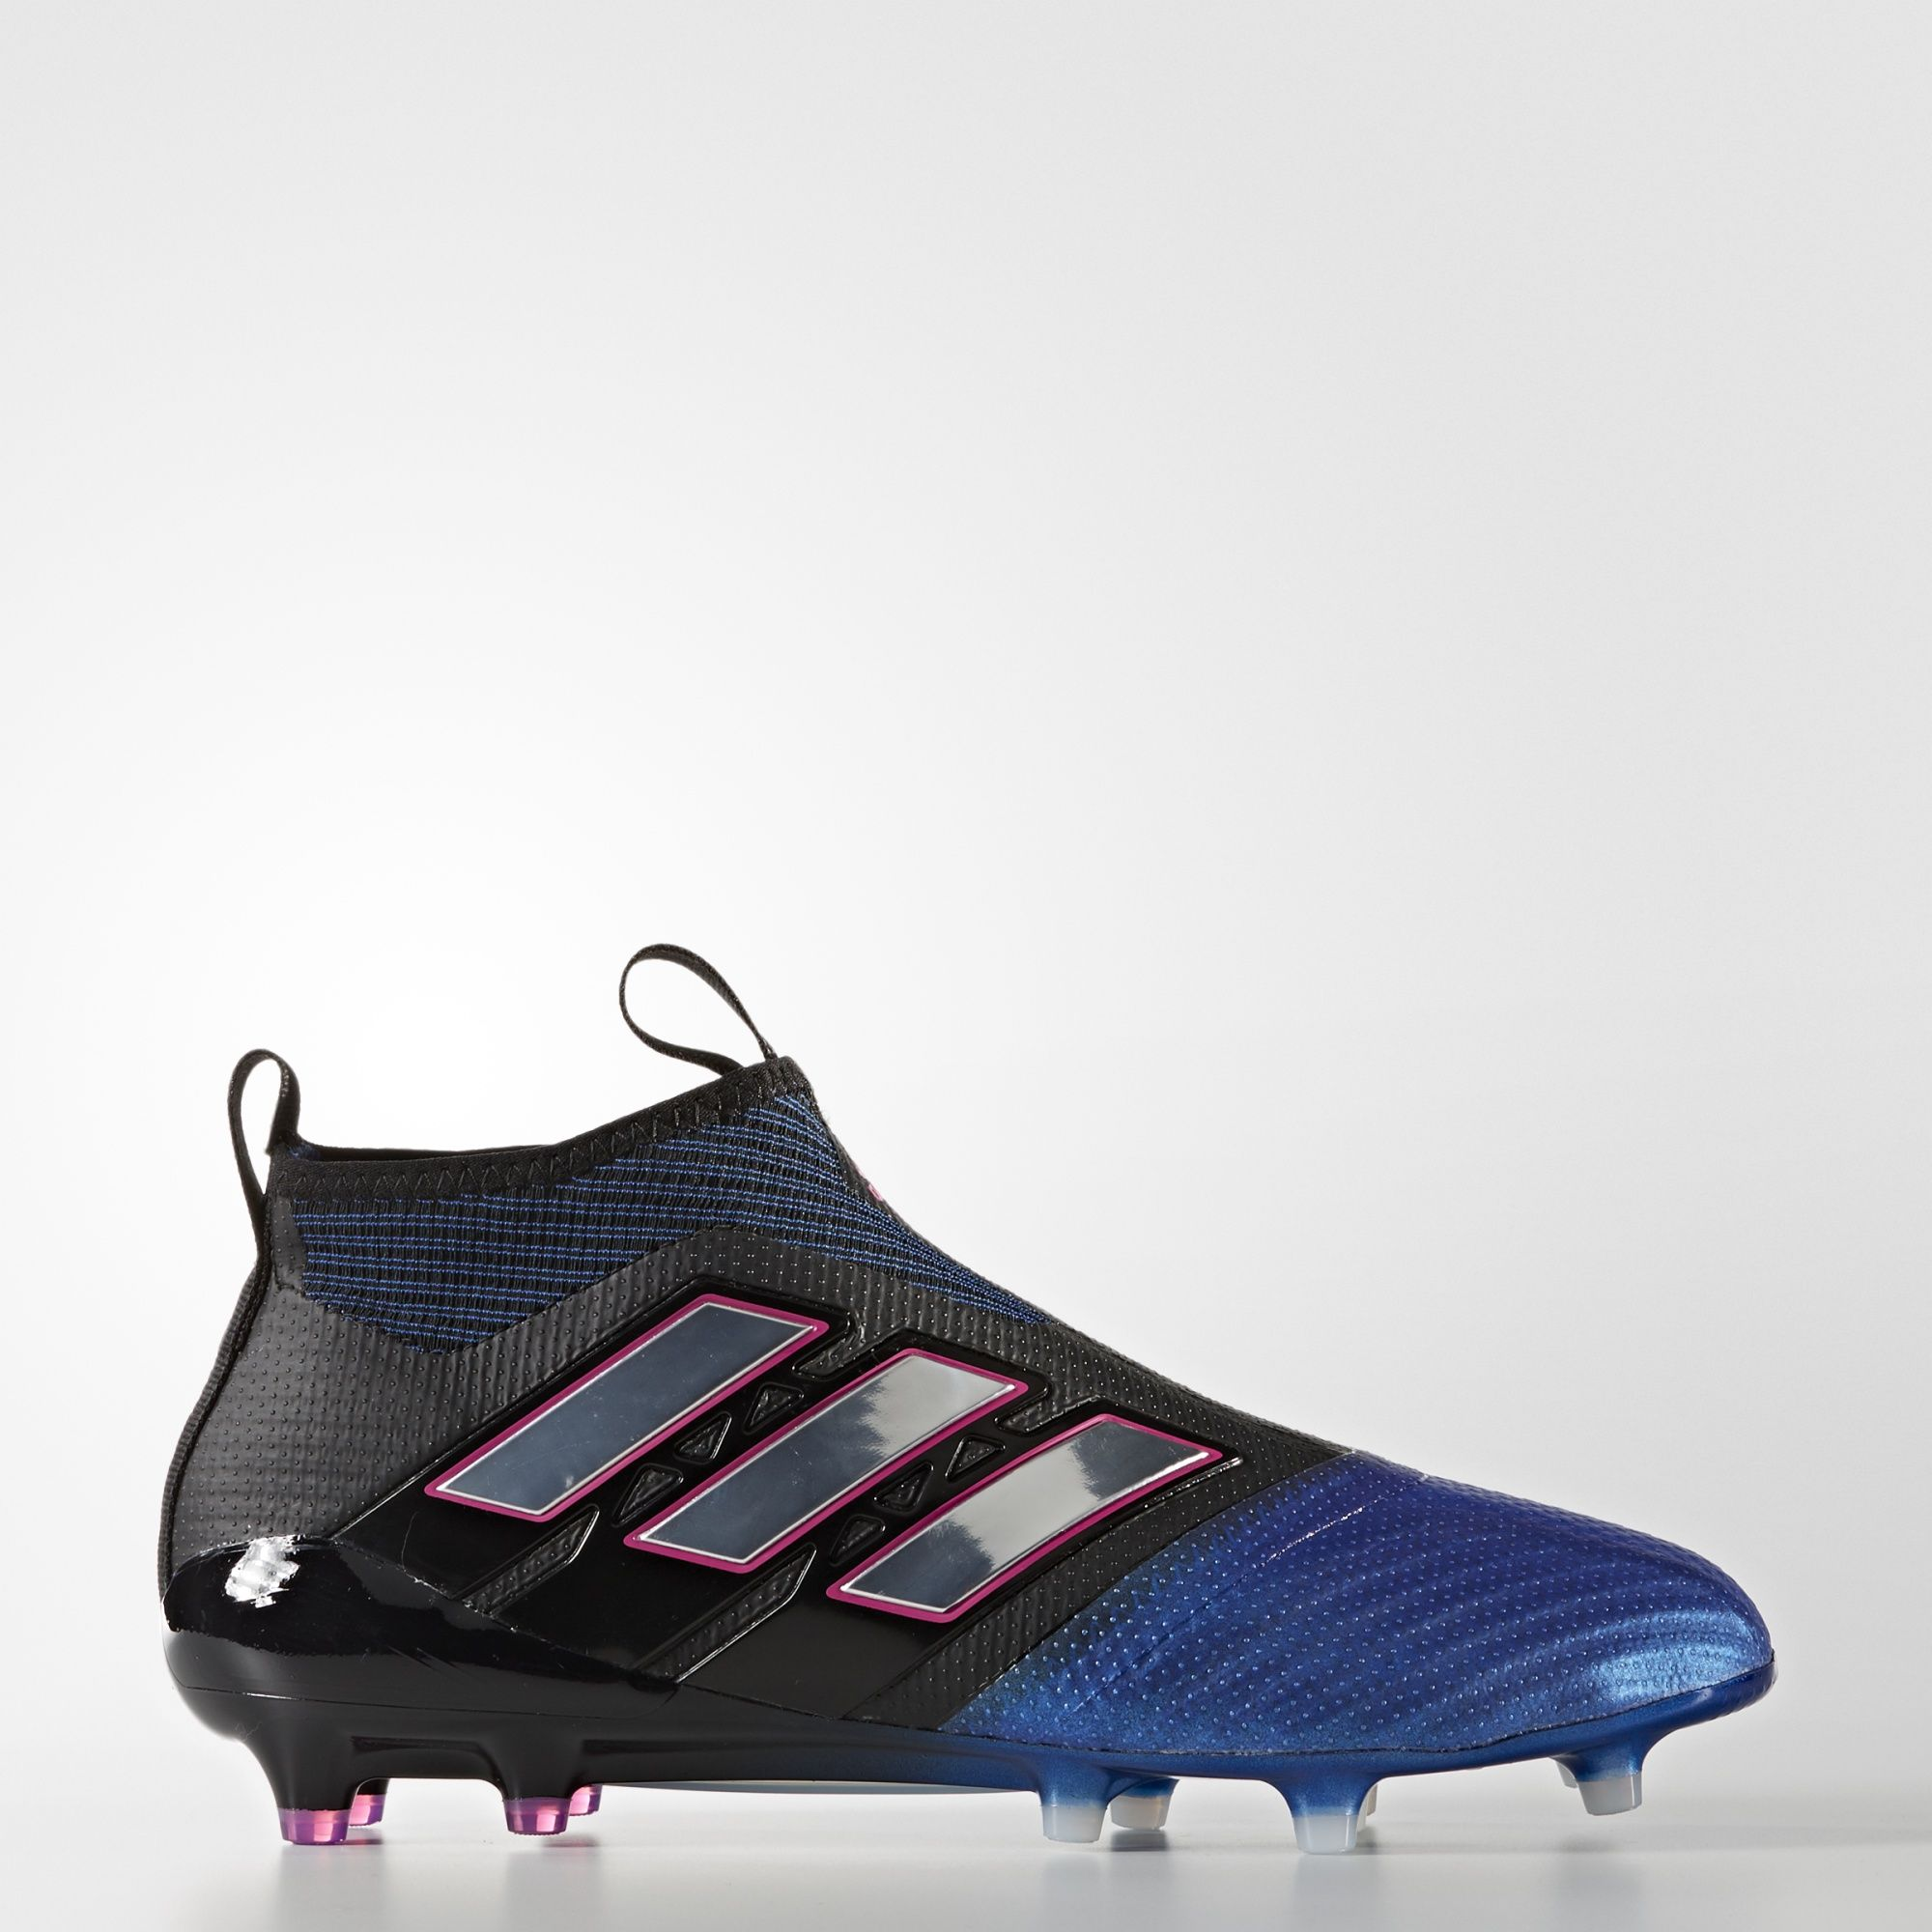 super popular 0f56d f21d4 ... adidas ace 17+ purecontrol fg black white blue